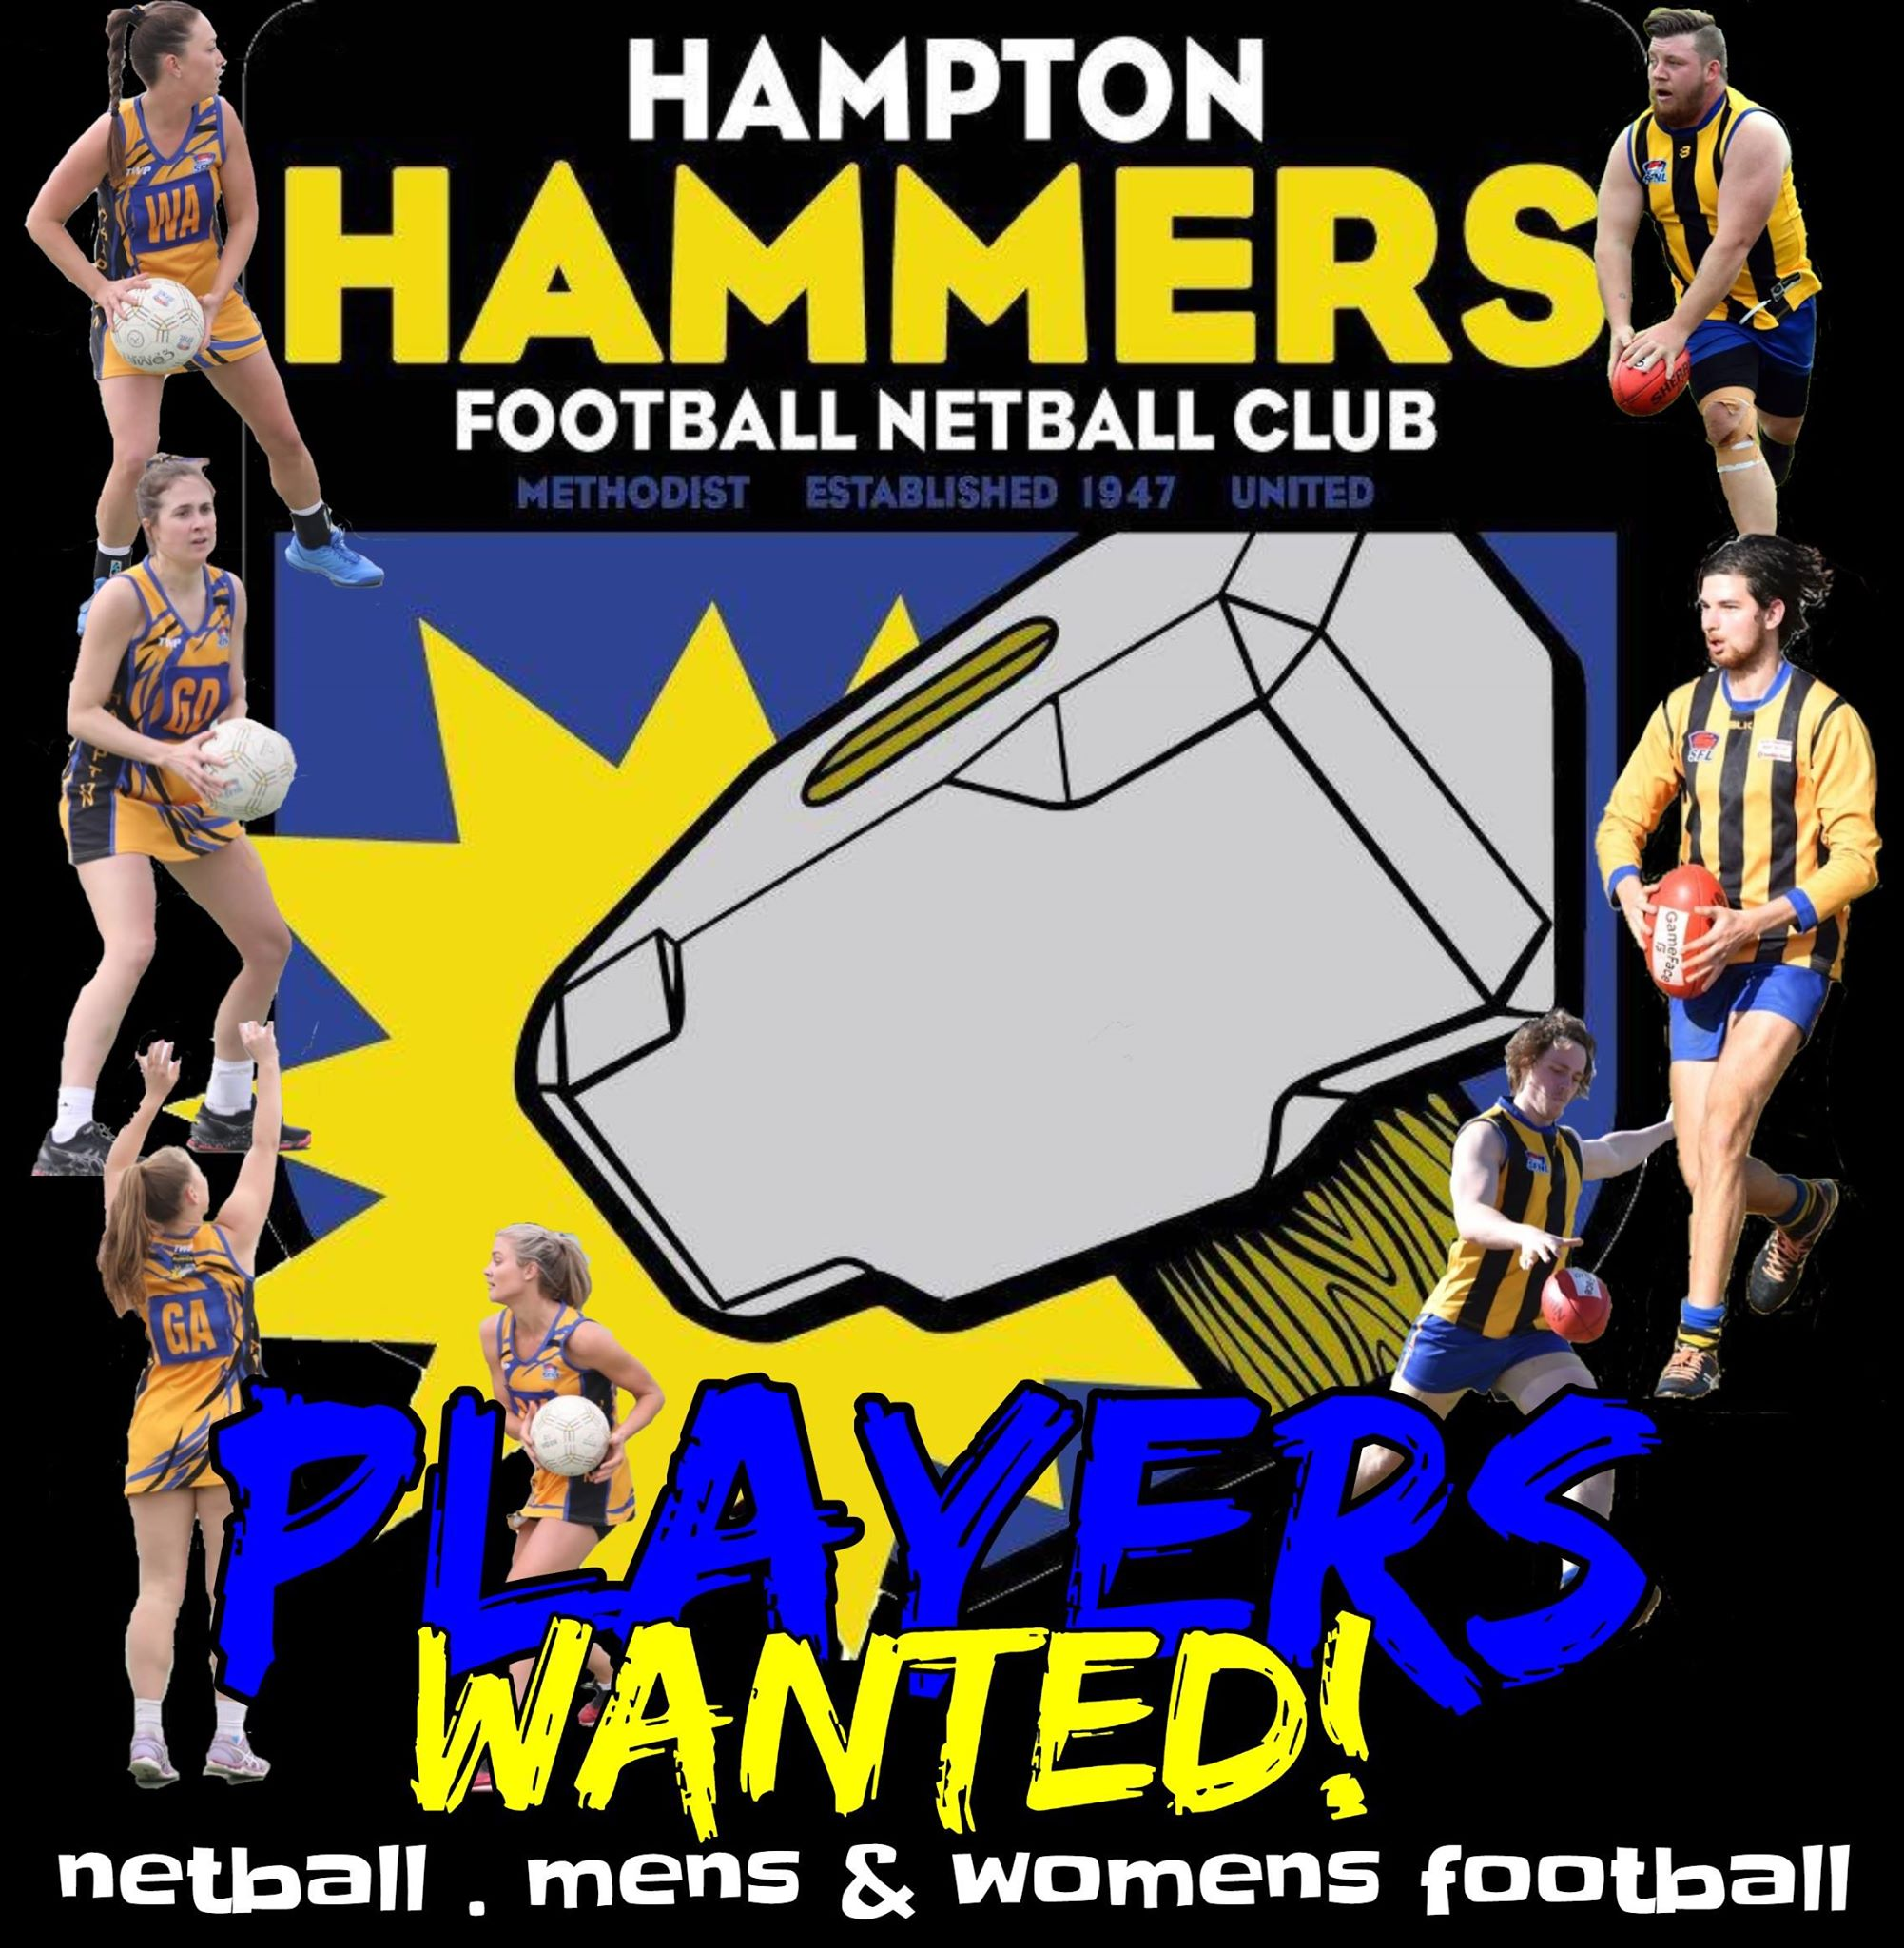 Players Wanted - male and female footballer and netballers